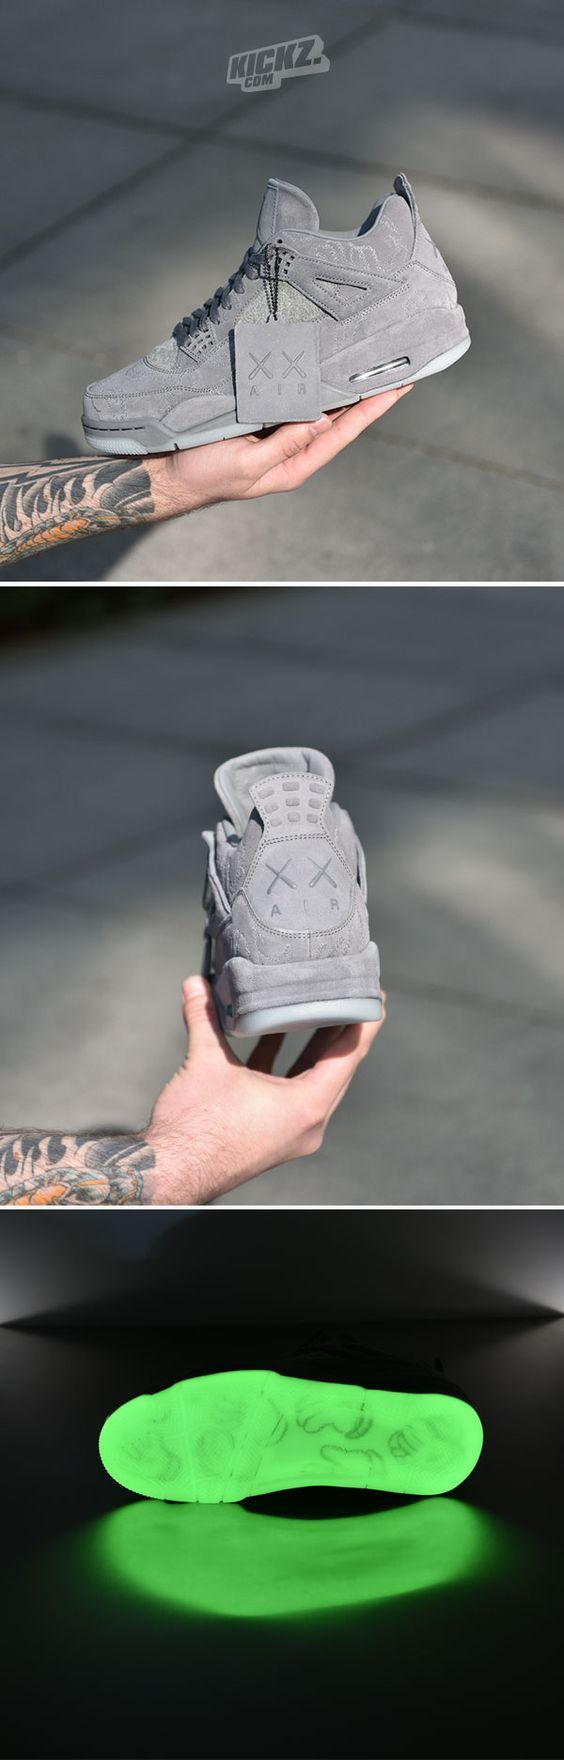 Air Jordan 4 x KAWS  Pinnacle Release  Cream of the crop  Absolute gem  AirJordan Kaws kickzcom is part of Shoes -